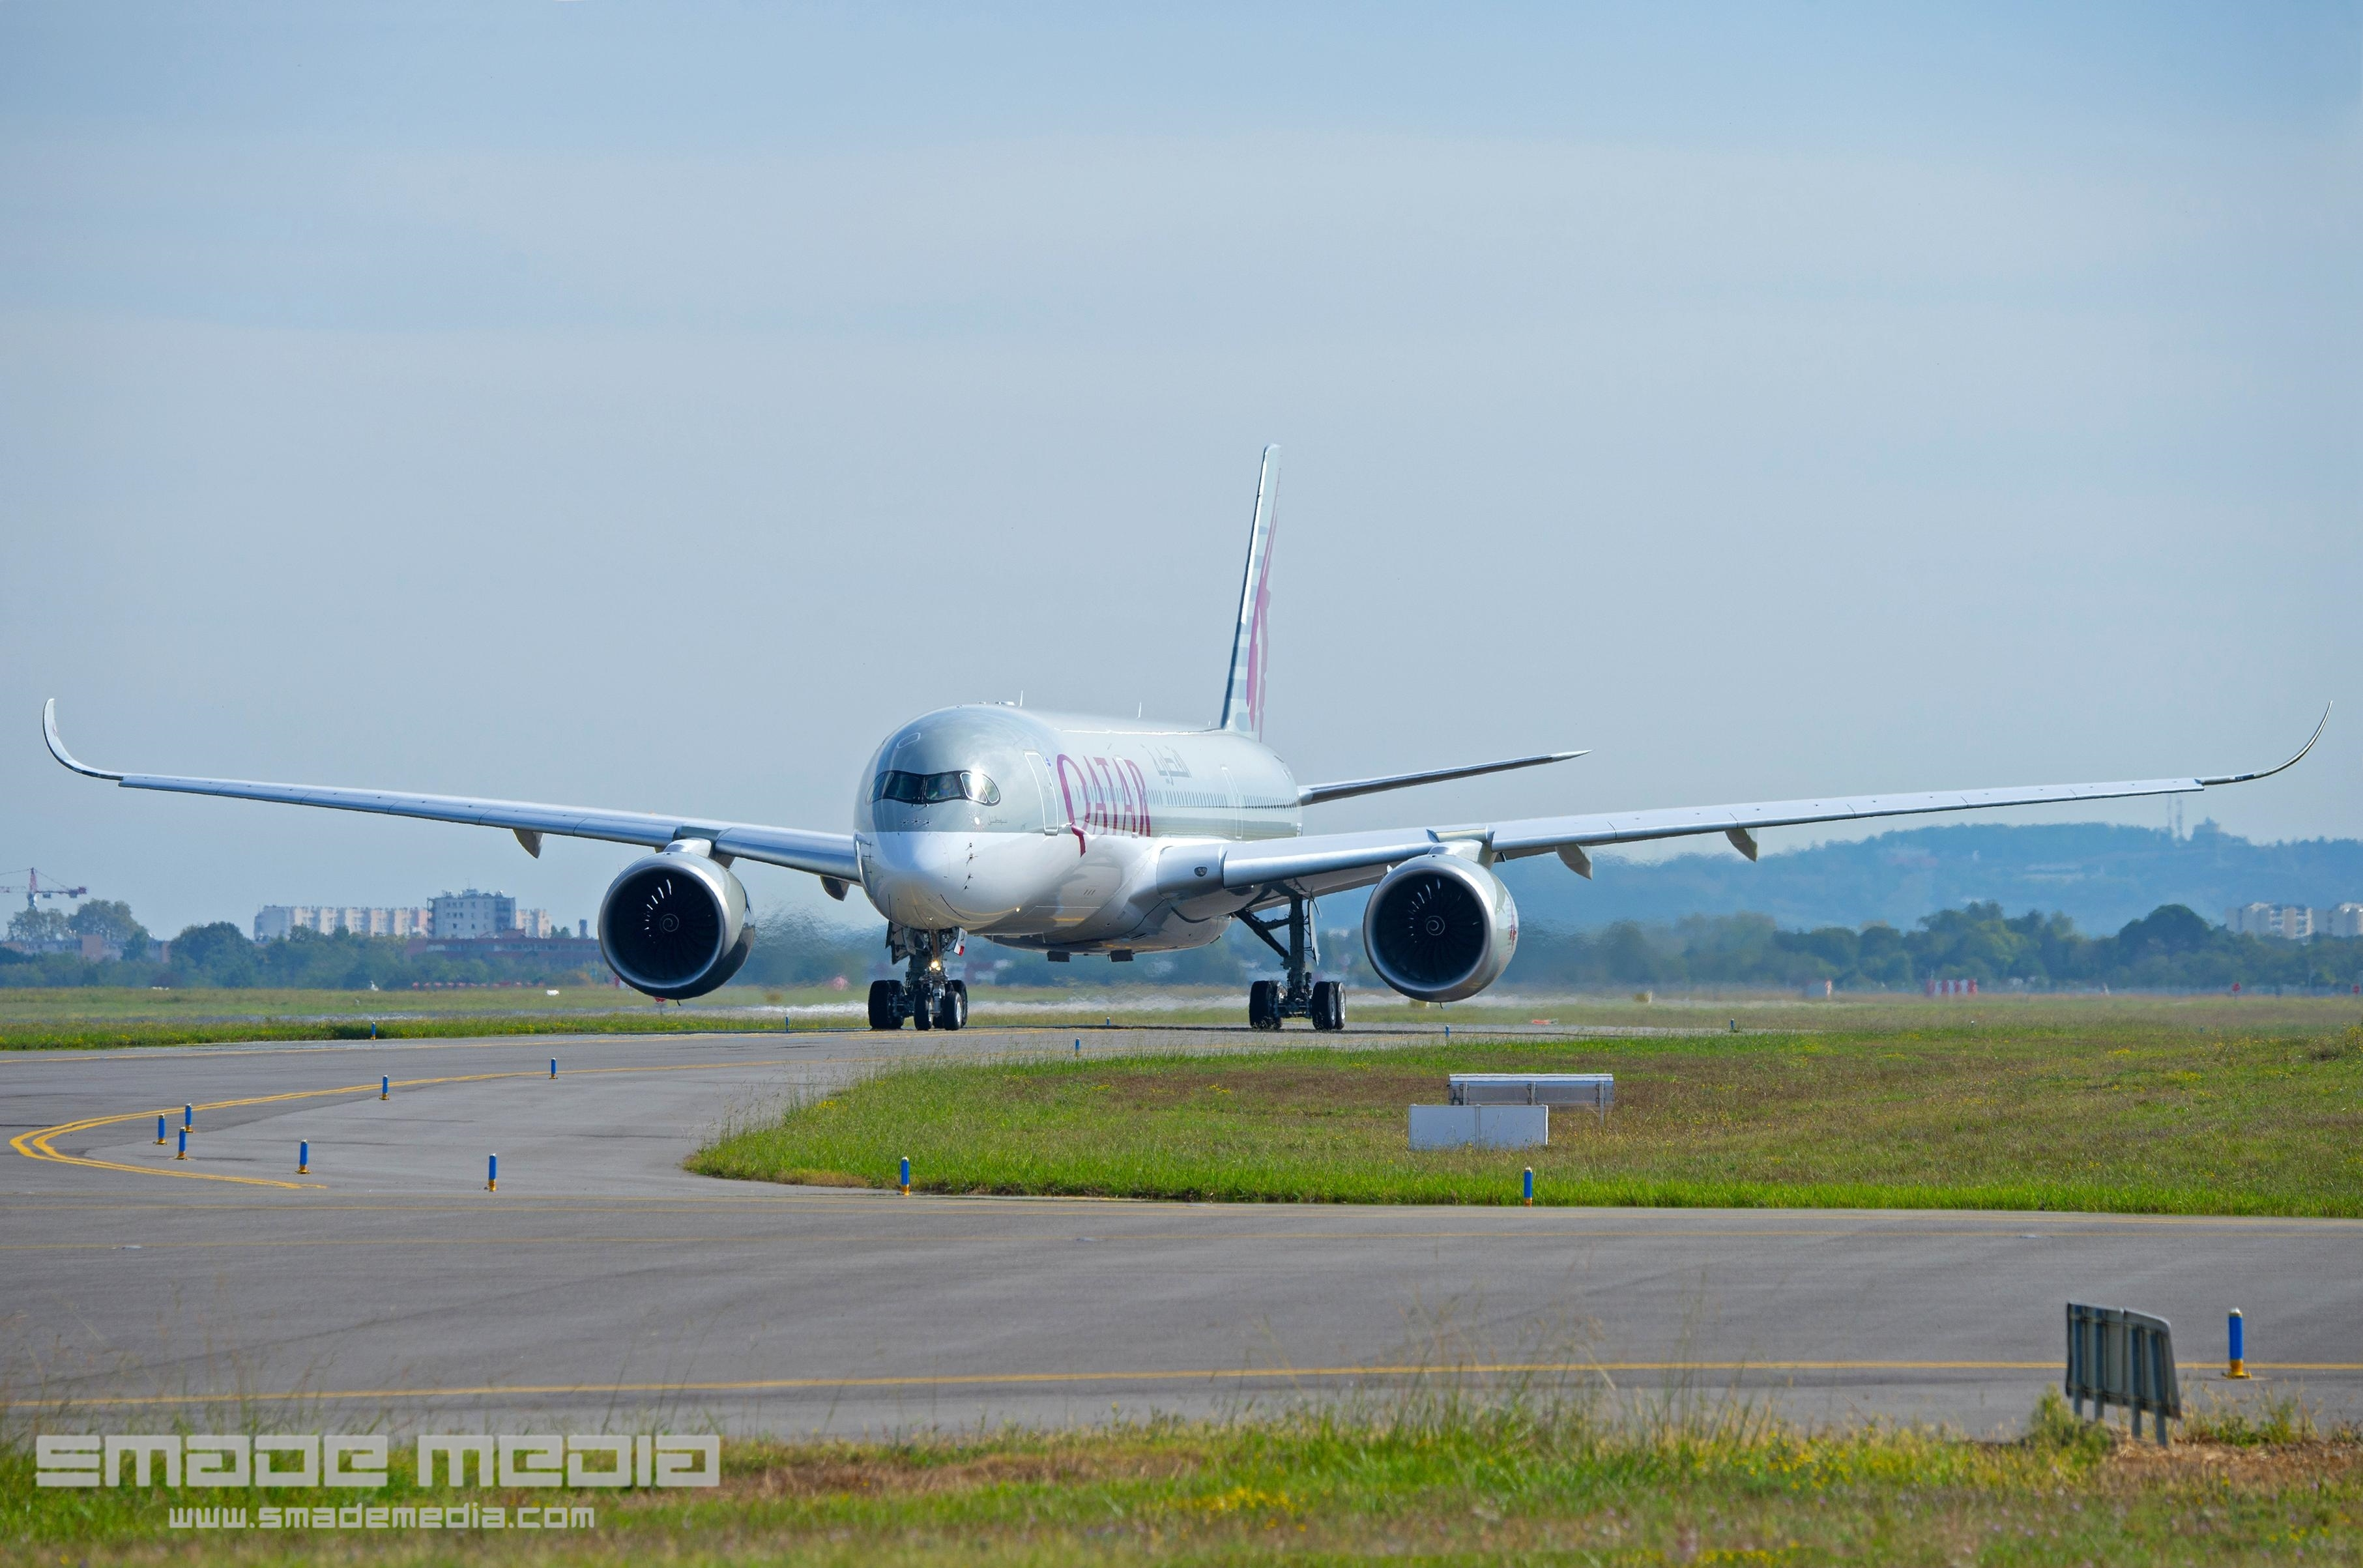 QATAR A350 Roll Out AND First Flight - SMADE MEDIA (8)